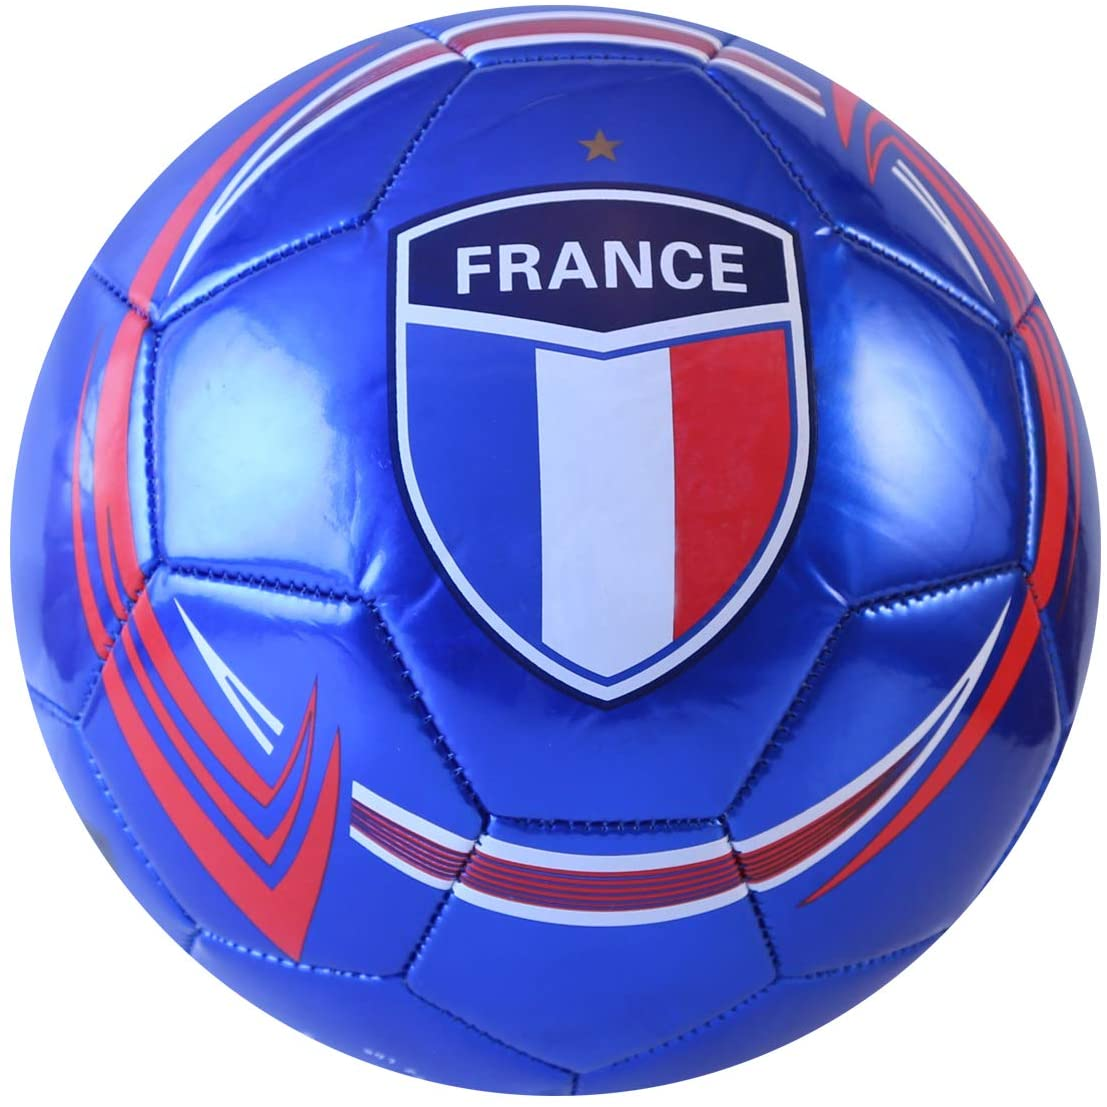 Machine Stitch Soccer Ball with France Country Name Design C Size: 5 (Blue)